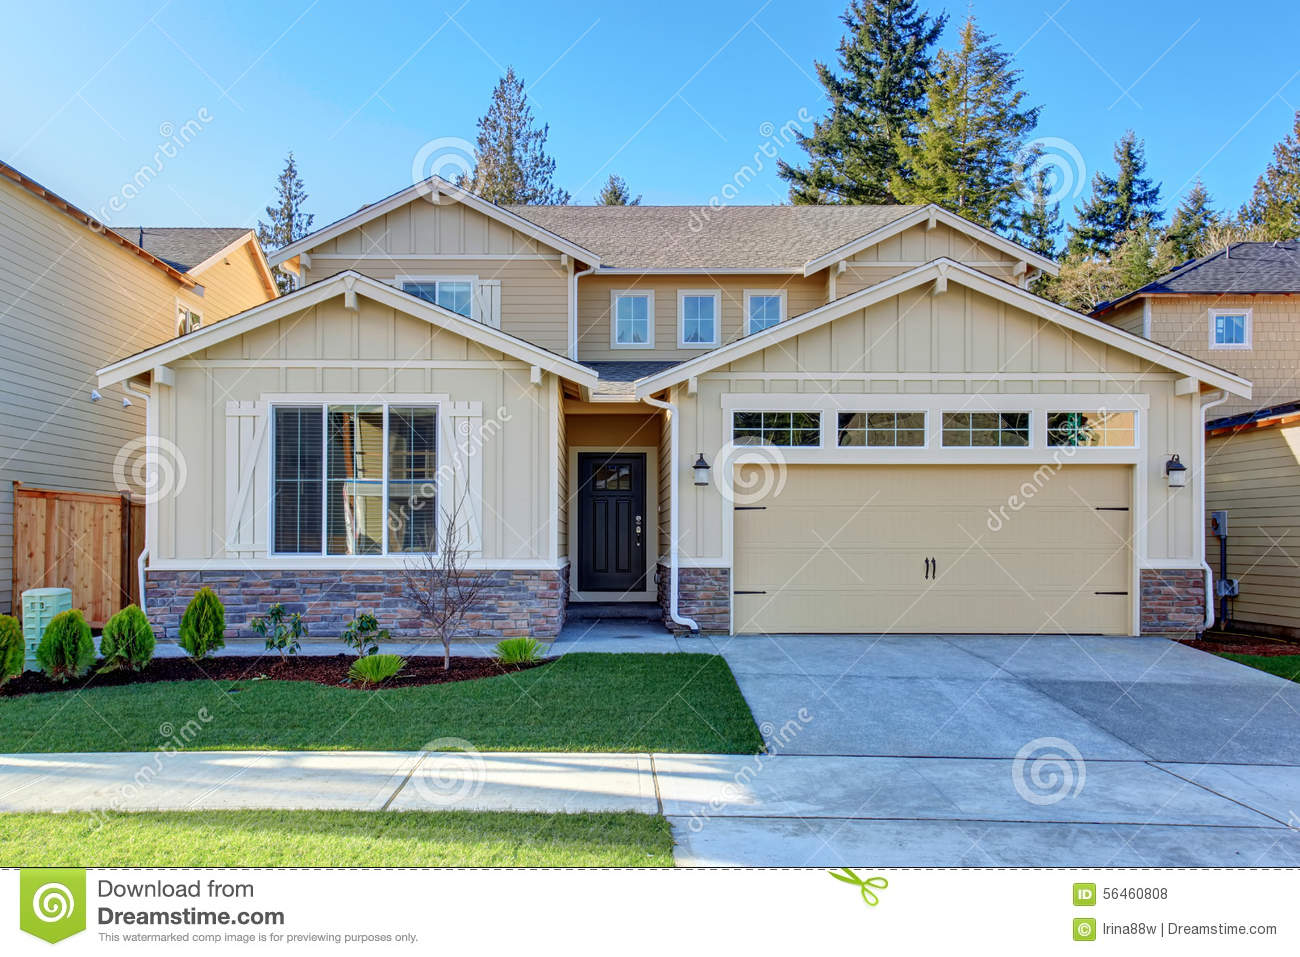 Perfect Tan Town House With Garage And Driveway Stock